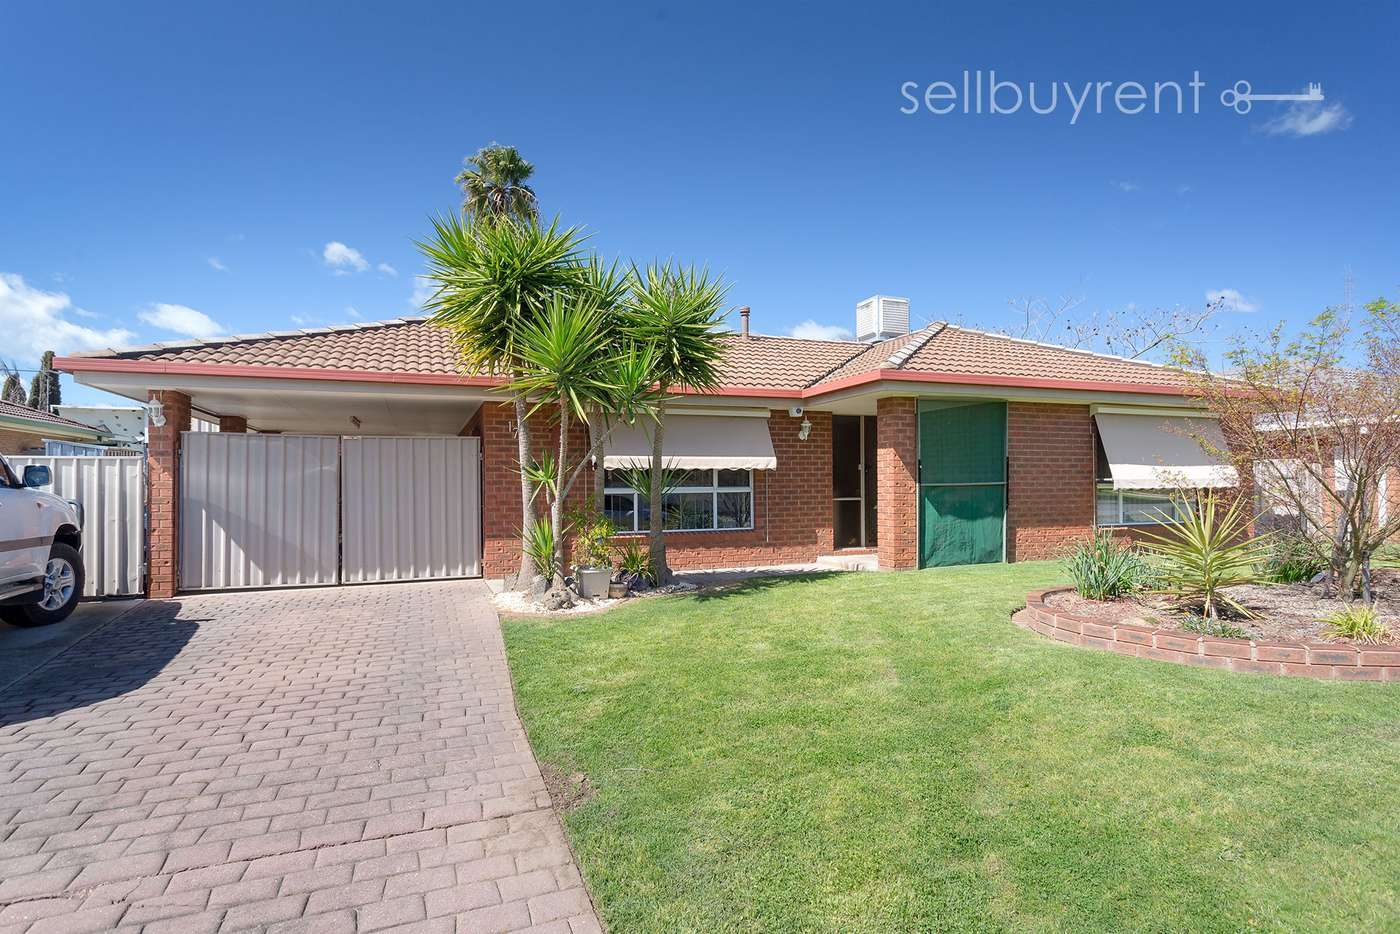 Main view of Homely house listing, 17 MCFARLAND ROAD, Wodonga VIC 3690